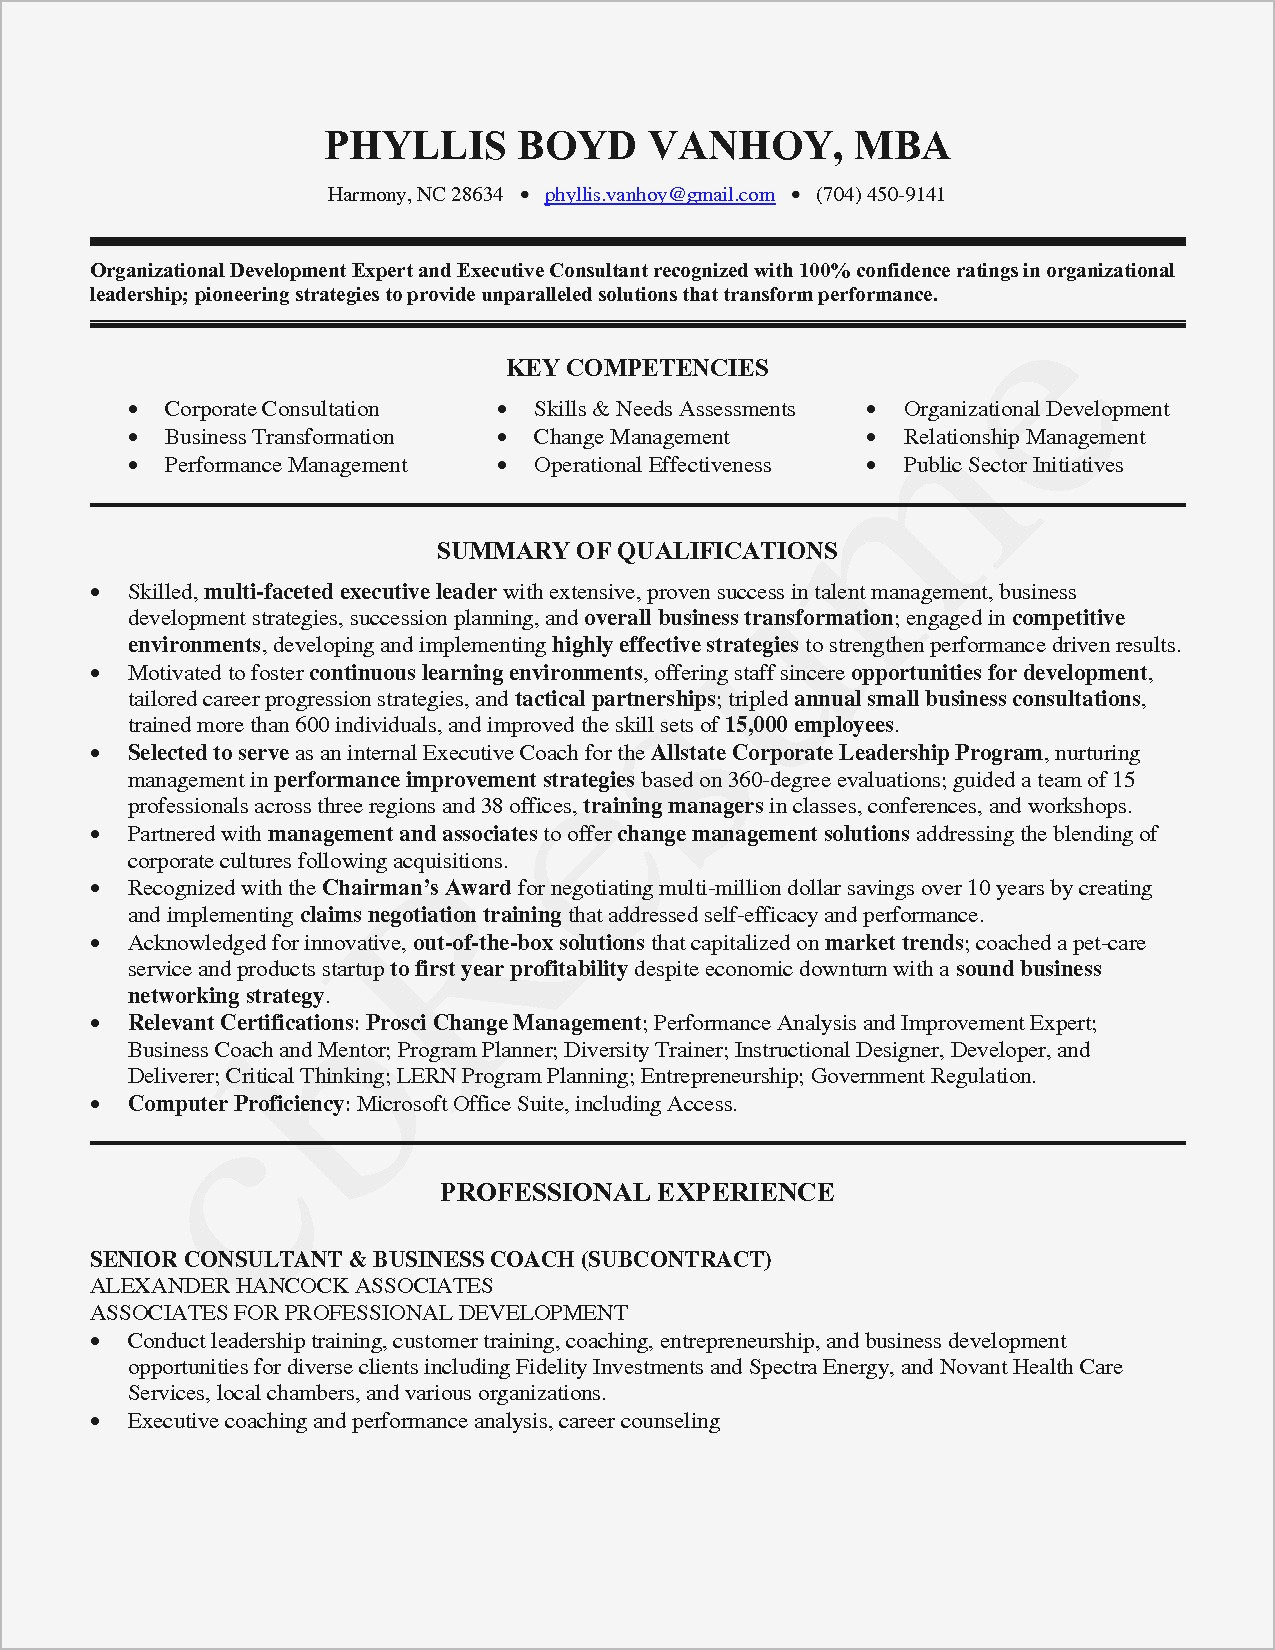 Transition Letter Template - Resume with Cover Letter Ideas